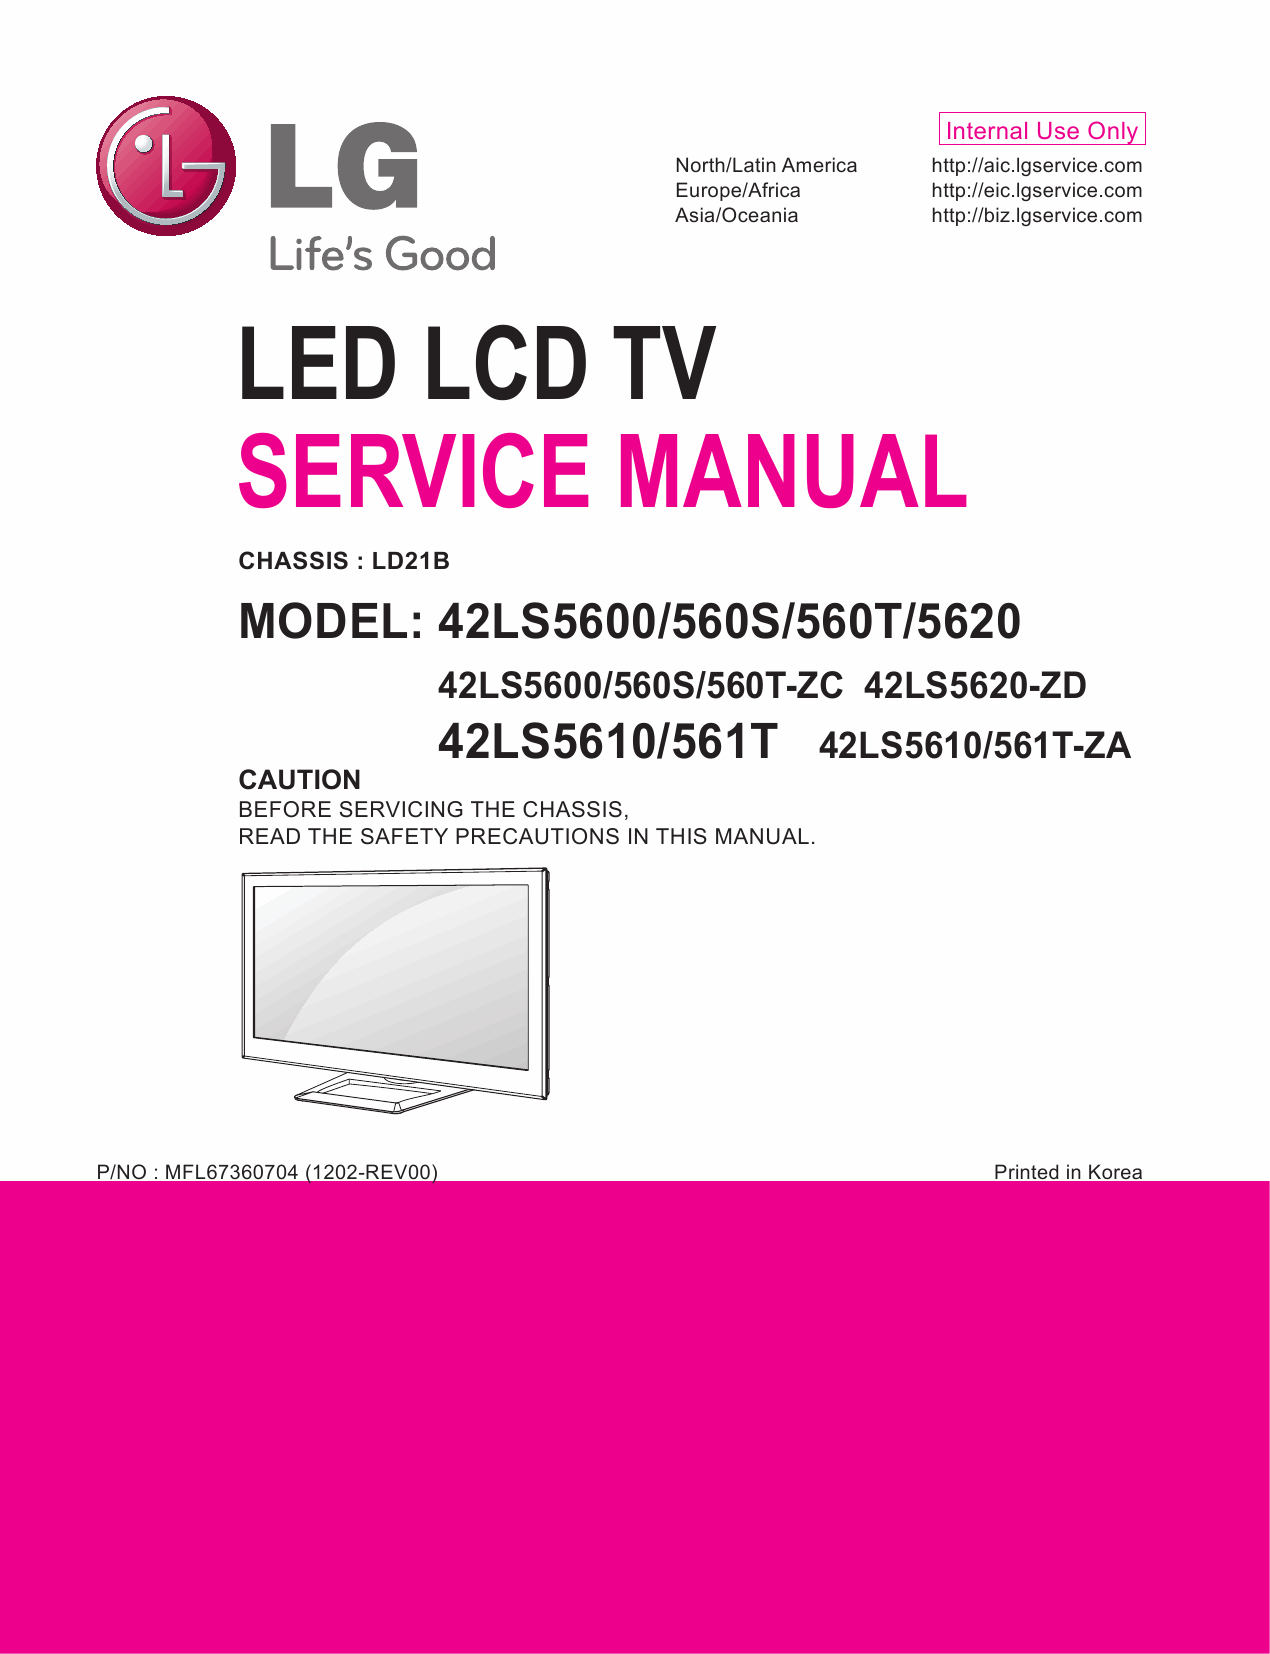 LG_LED_TV_42LS5600_560S_560T_5620_5610_561T_Service_Manual_2012_Qmanual.com-1